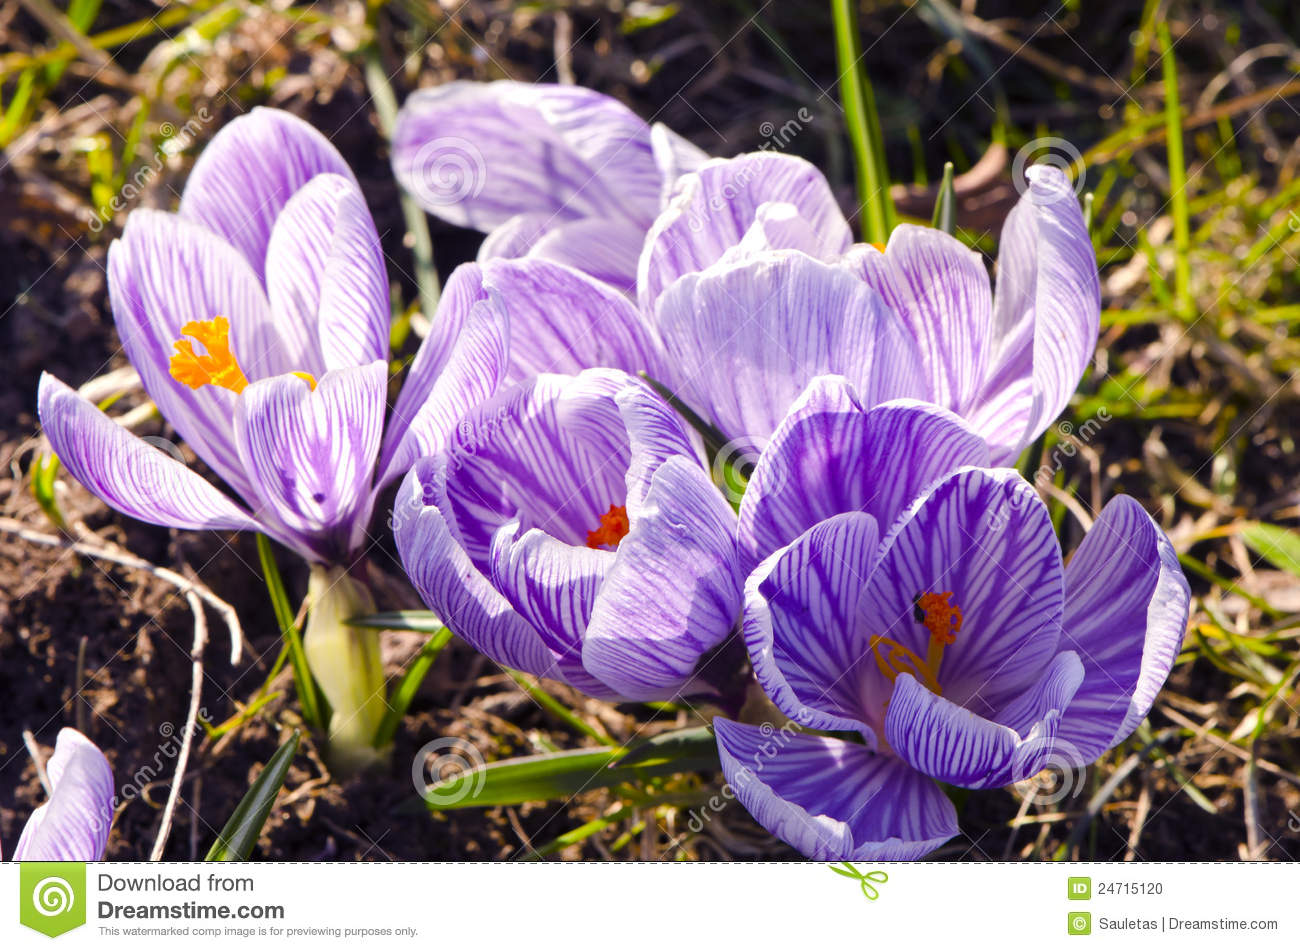 Crocus saffron first spring flower grow in garden stock photo crocus saffron first spring flower grow in garden mightylinksfo